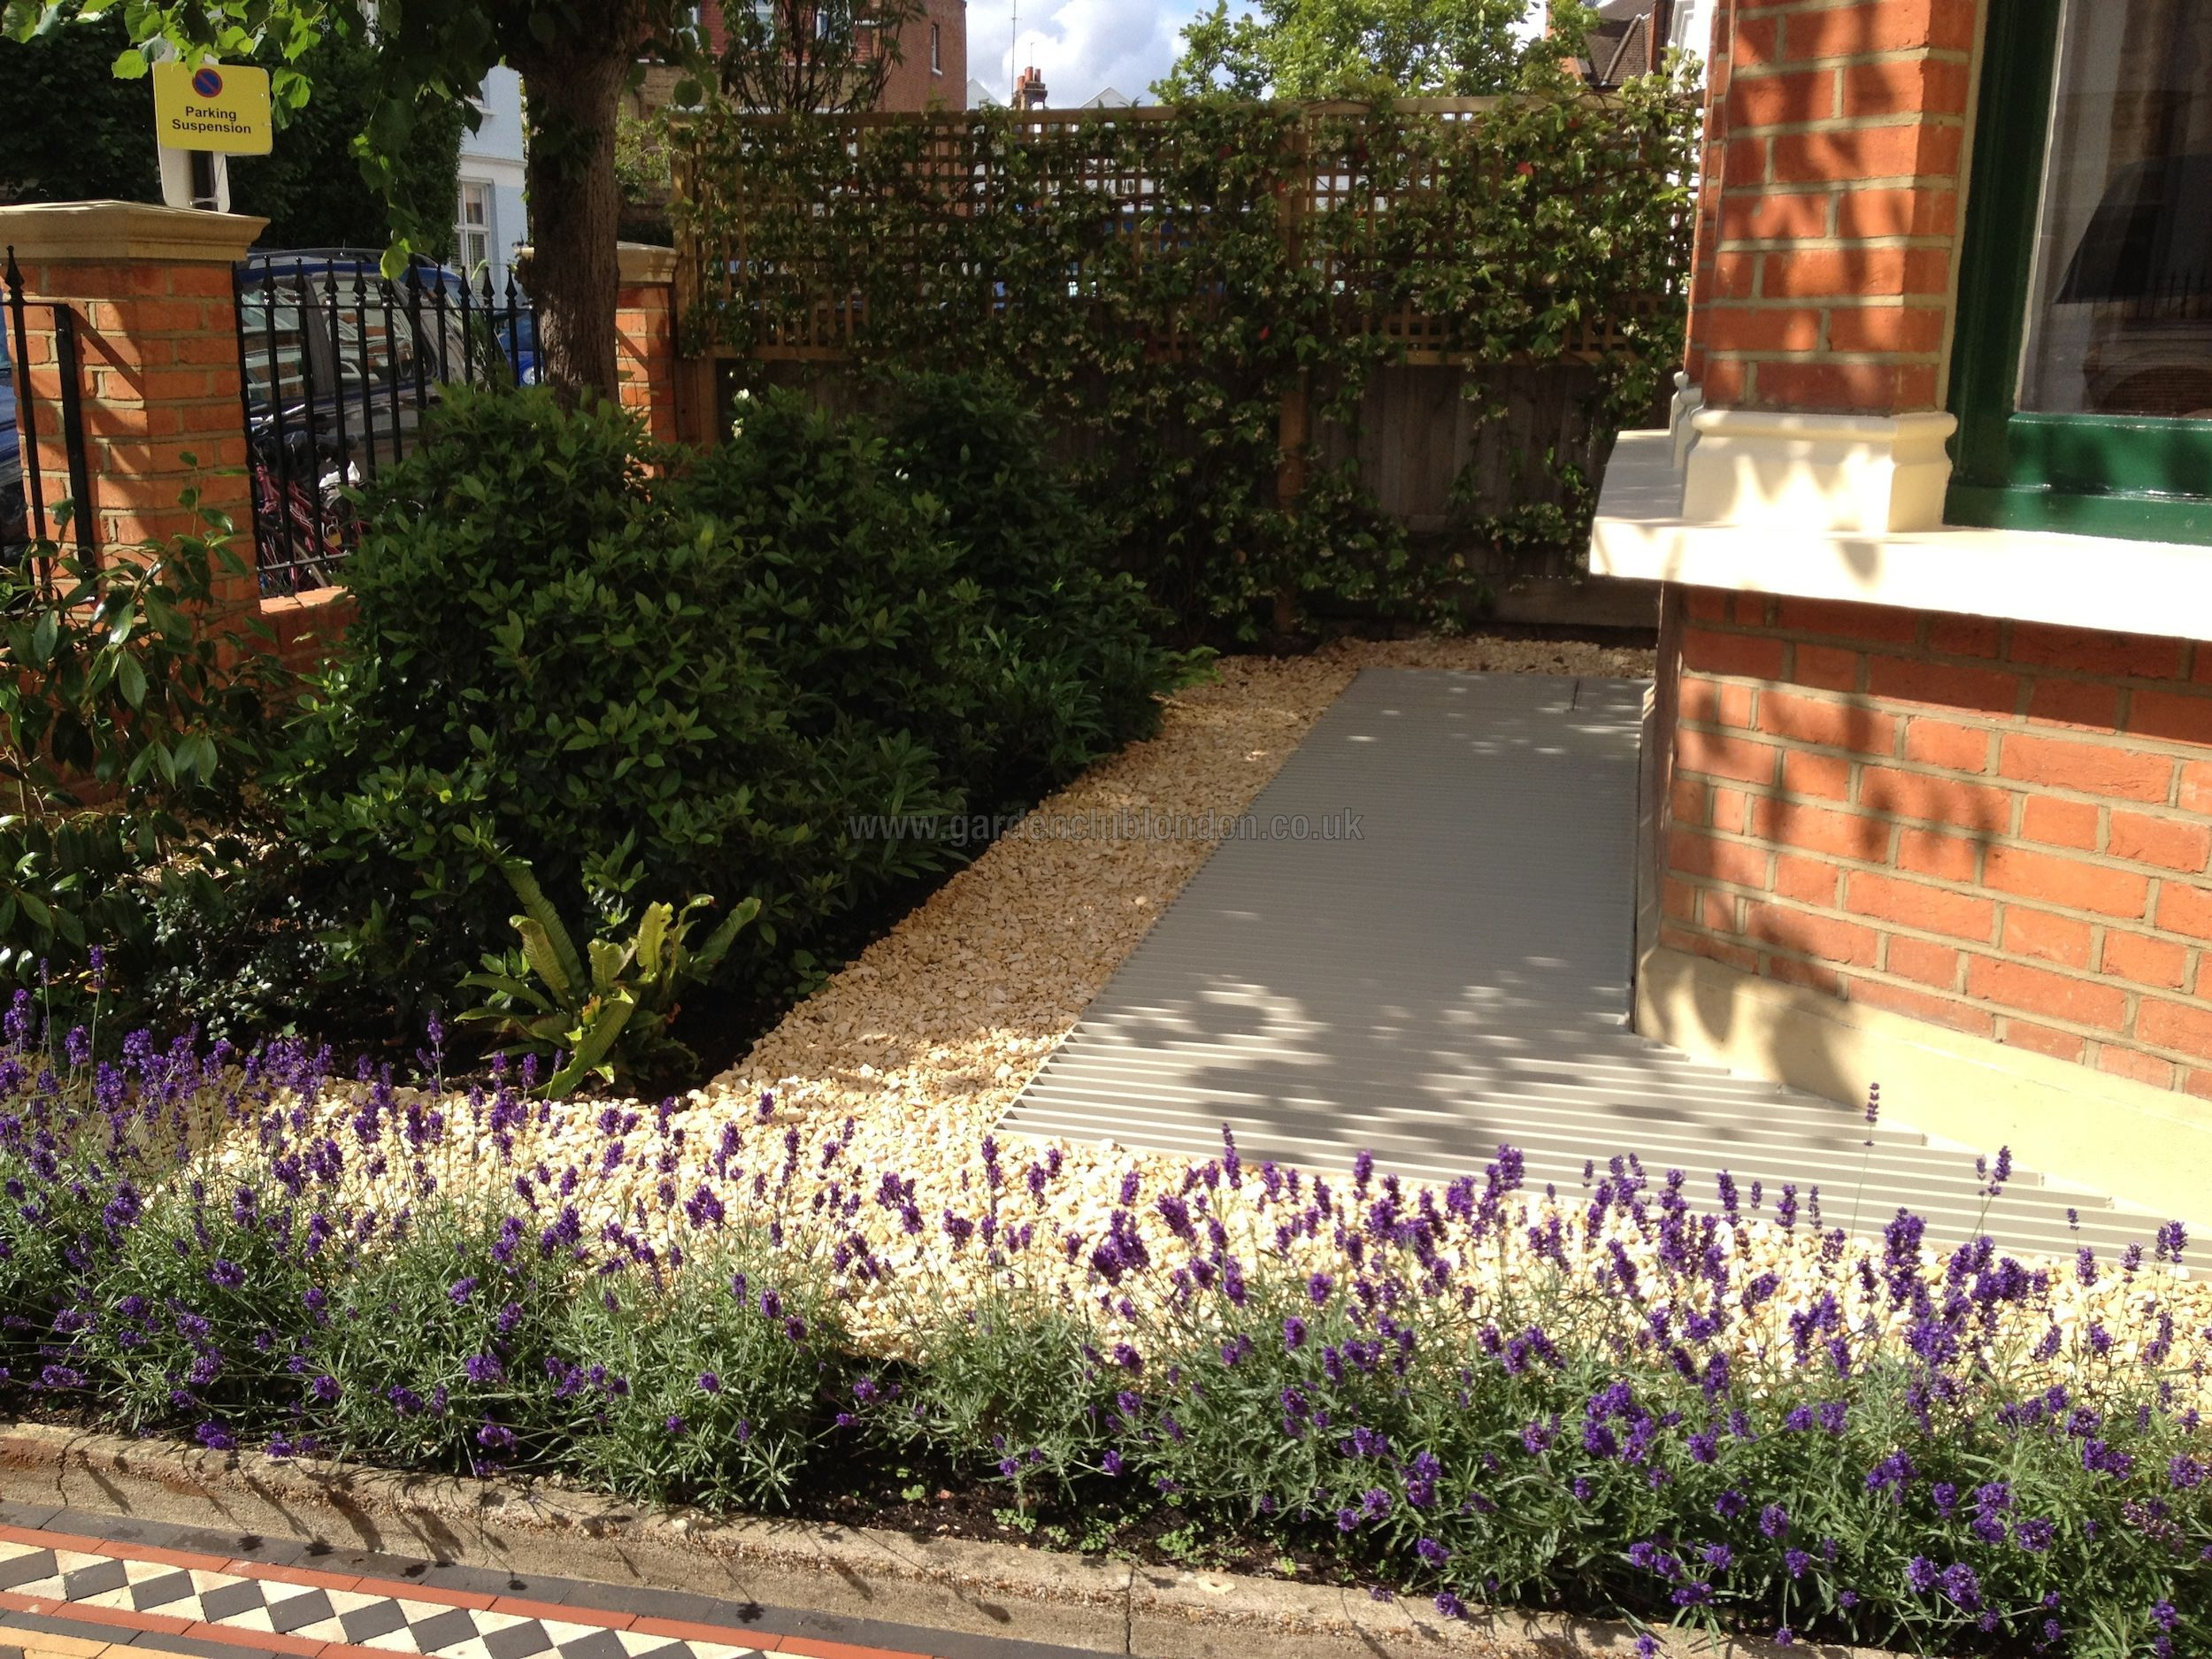 Lavender Hidcote planted to form a small hedge in a front garden